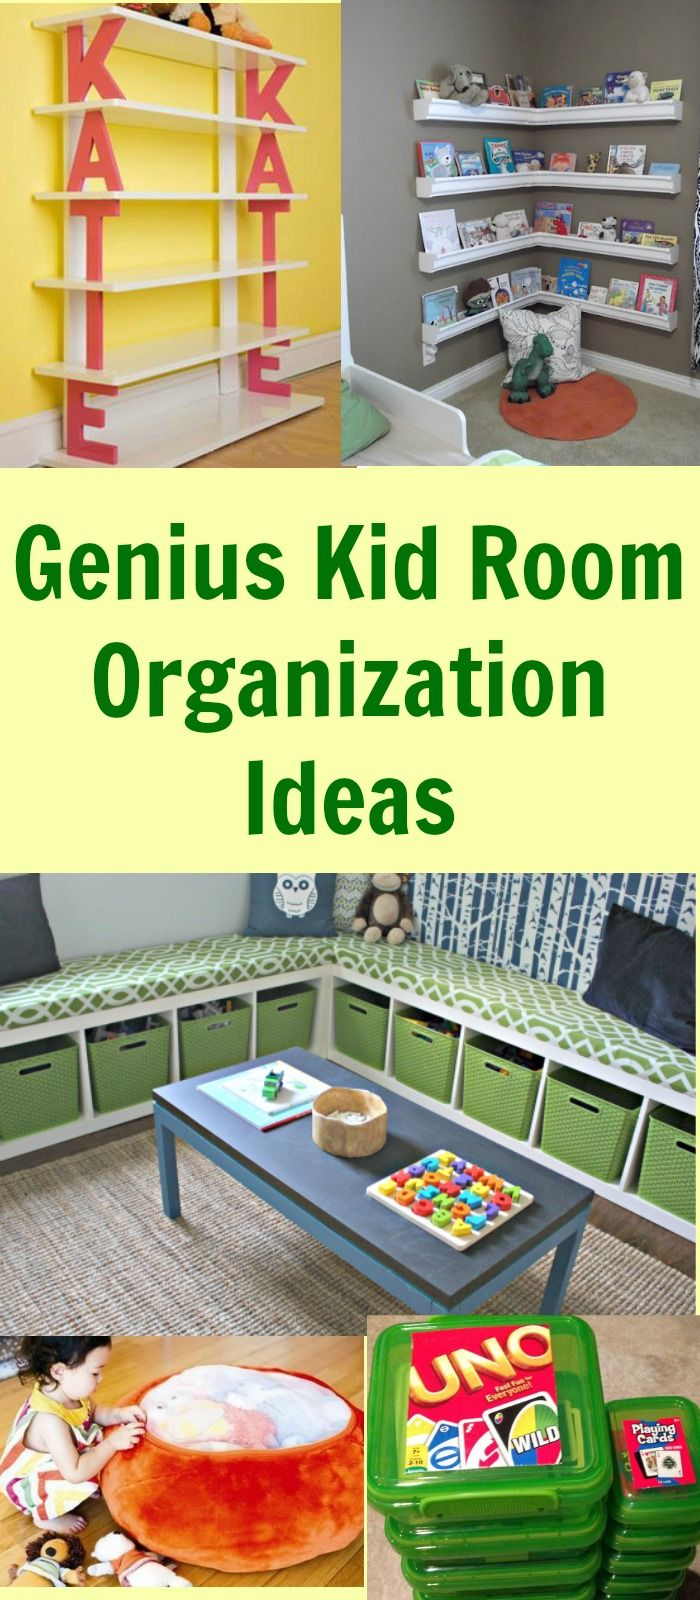 Use these kid room organization ideas to